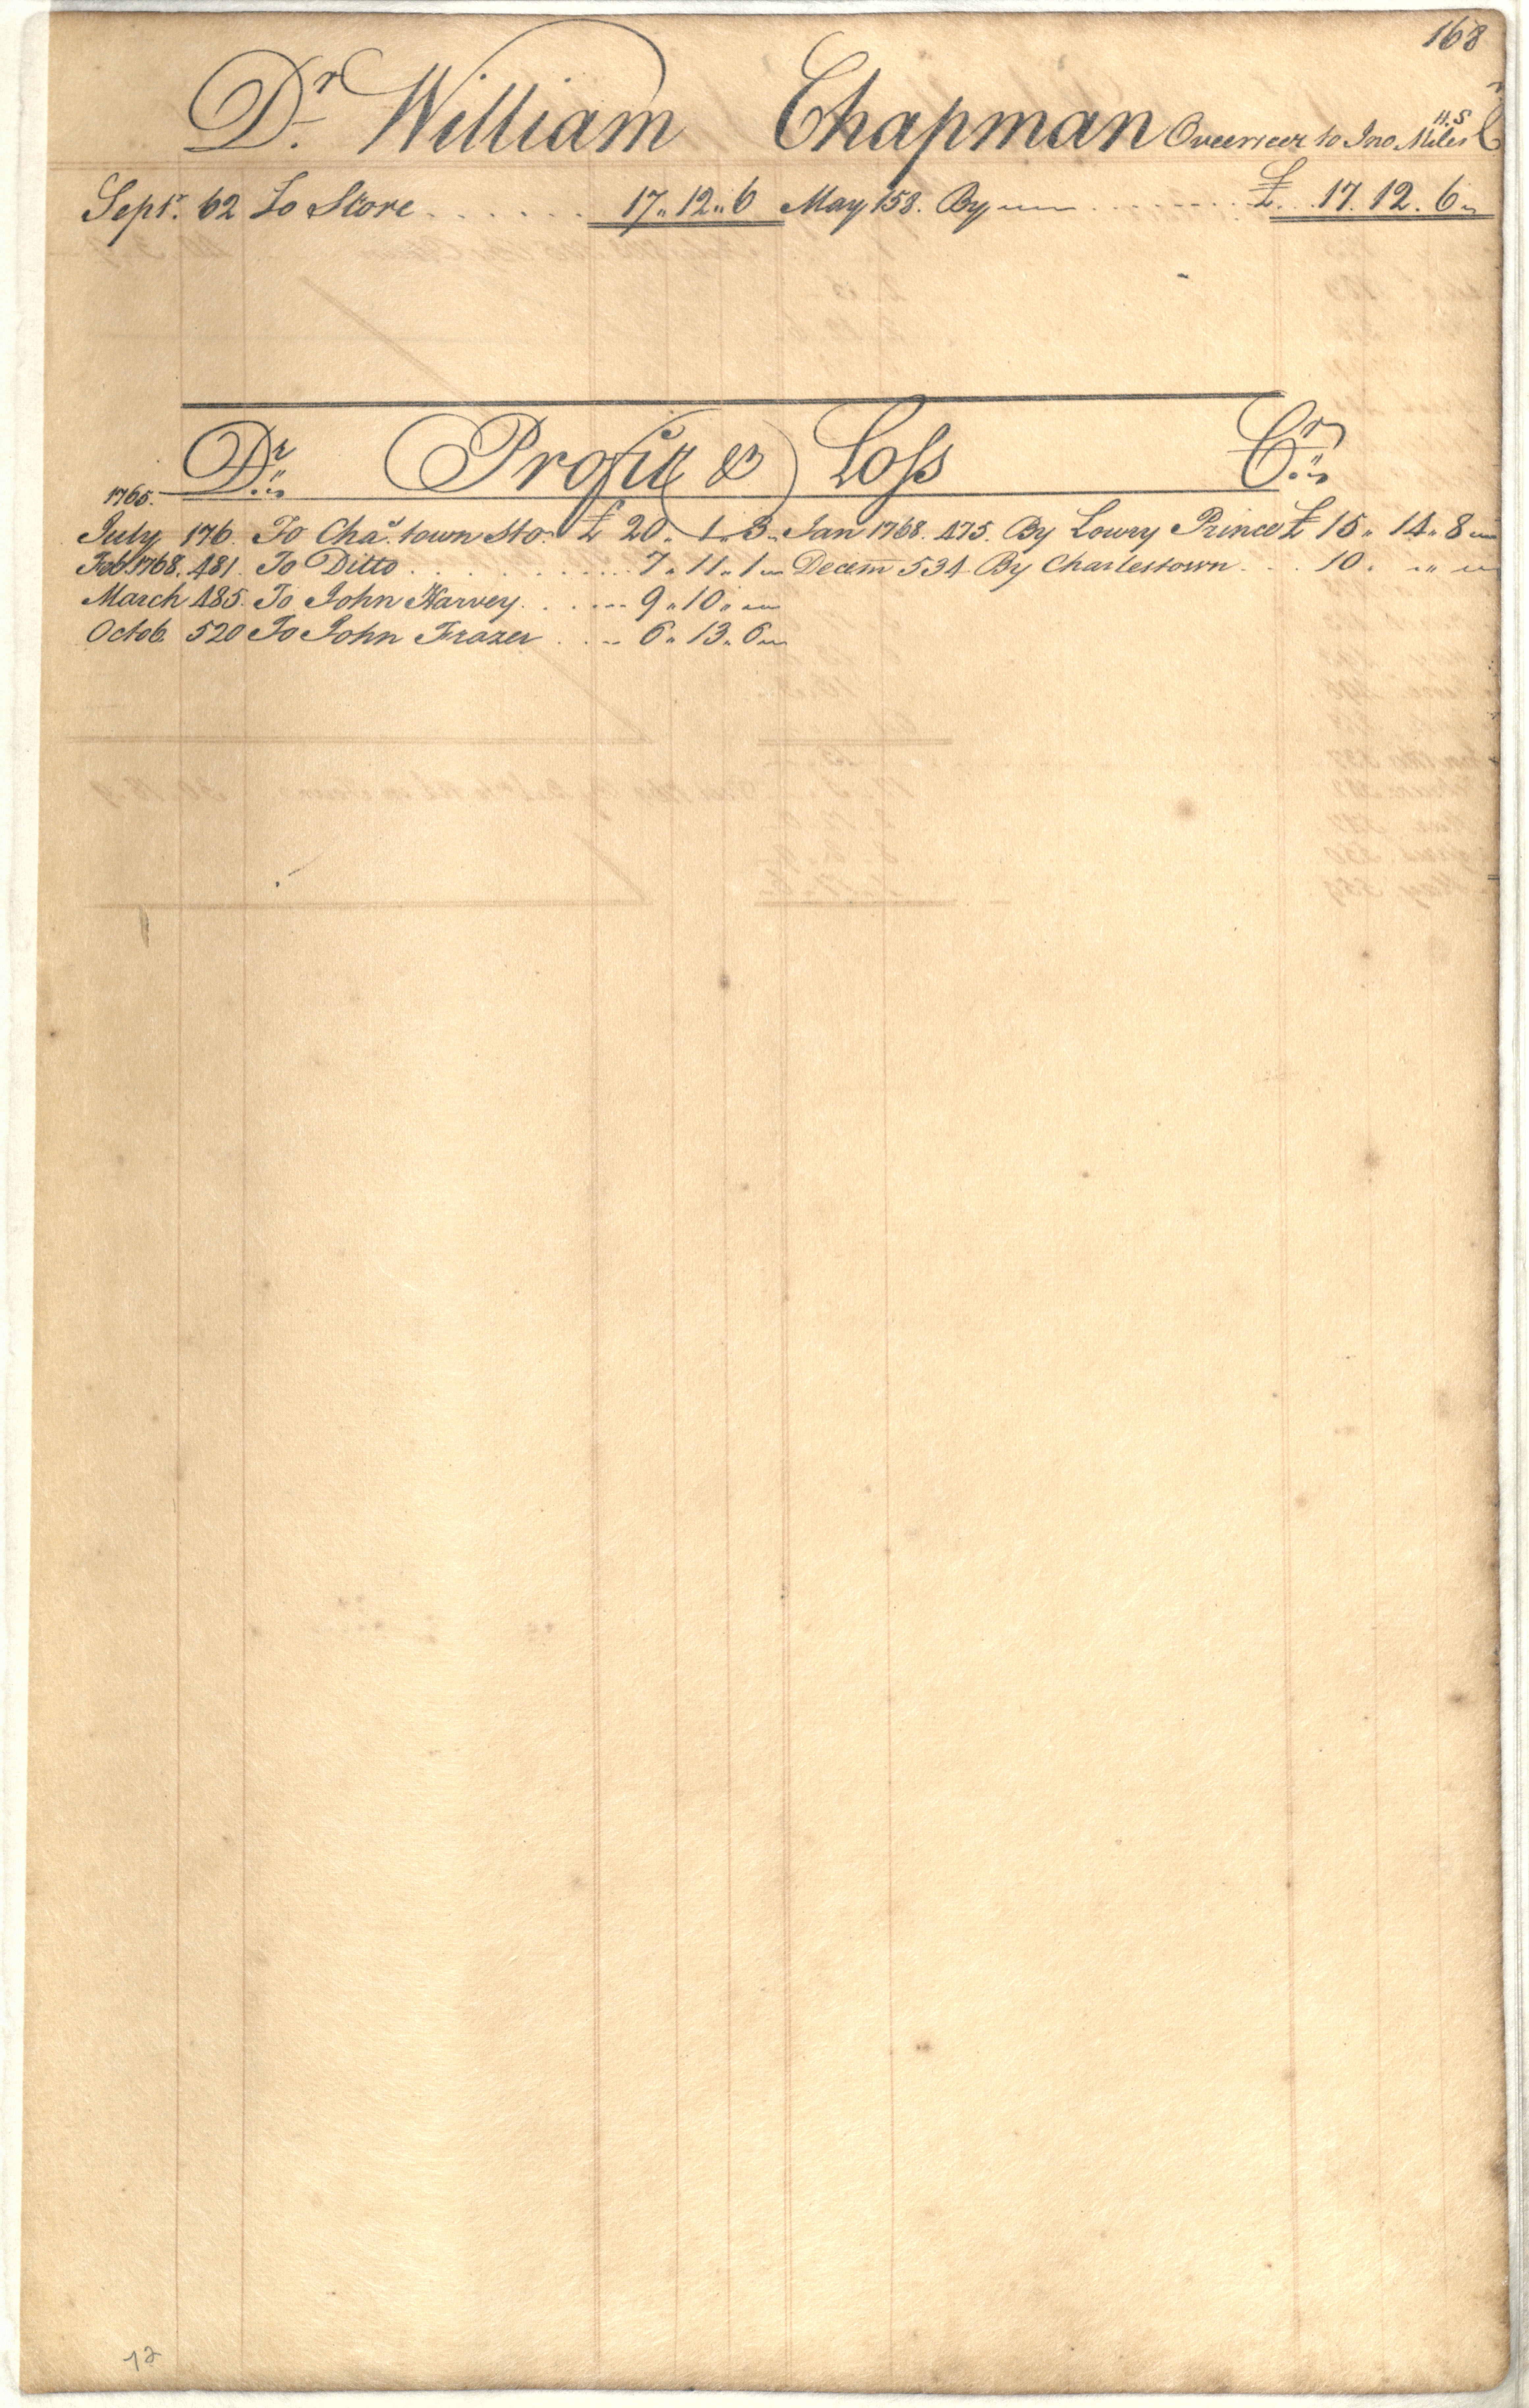 Plowden Weston's Business Ledger, page 168